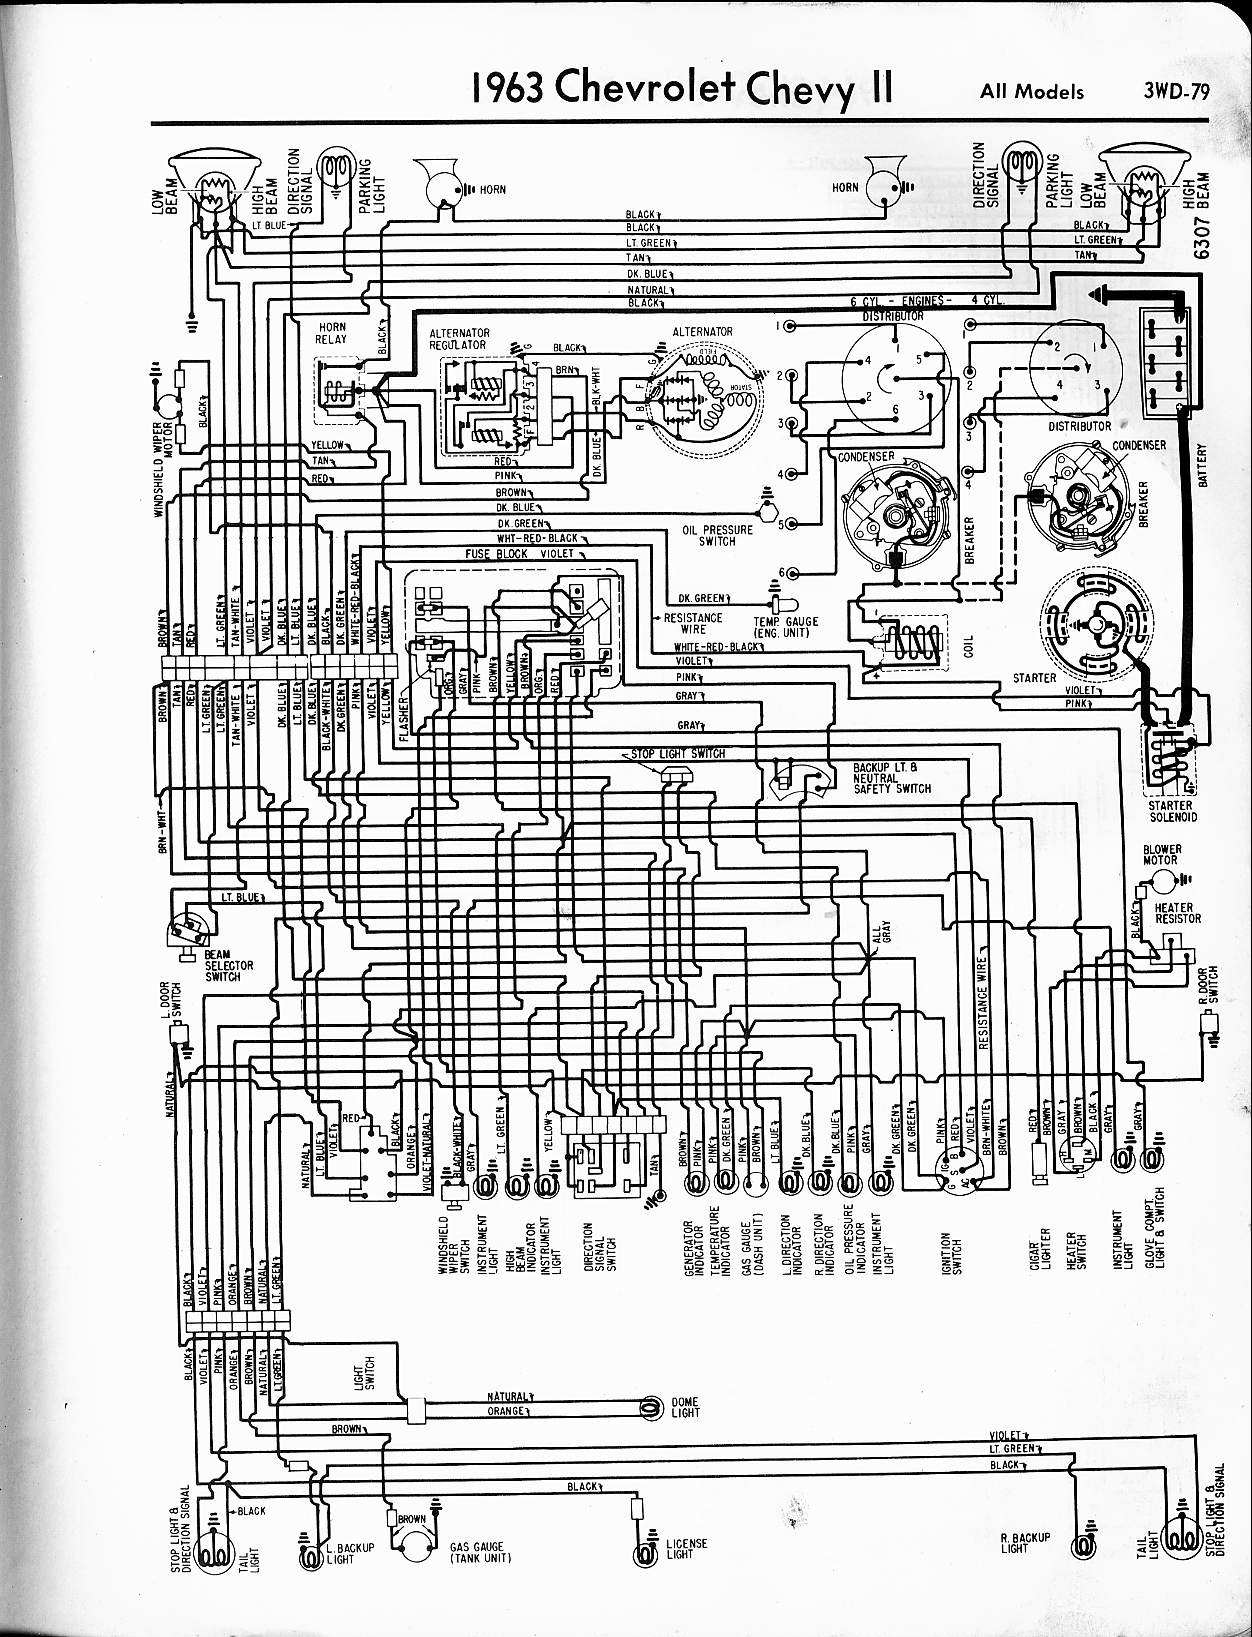 57 - 65 Chevy Wiring Diagrams  Volkswagen Wiring Schematic on engine schematics, plumbing schematics, transmission schematics, transformer schematics, amplifier schematics, wire schematics, ford diagrams schematics, circuit schematics, electronics schematics, ignition schematics, generator schematics, piping schematics, ecu schematics, ductwork schematics, motor schematics, computer schematics, electrical schematics, tube amp schematics, engineering schematics, design schematics,